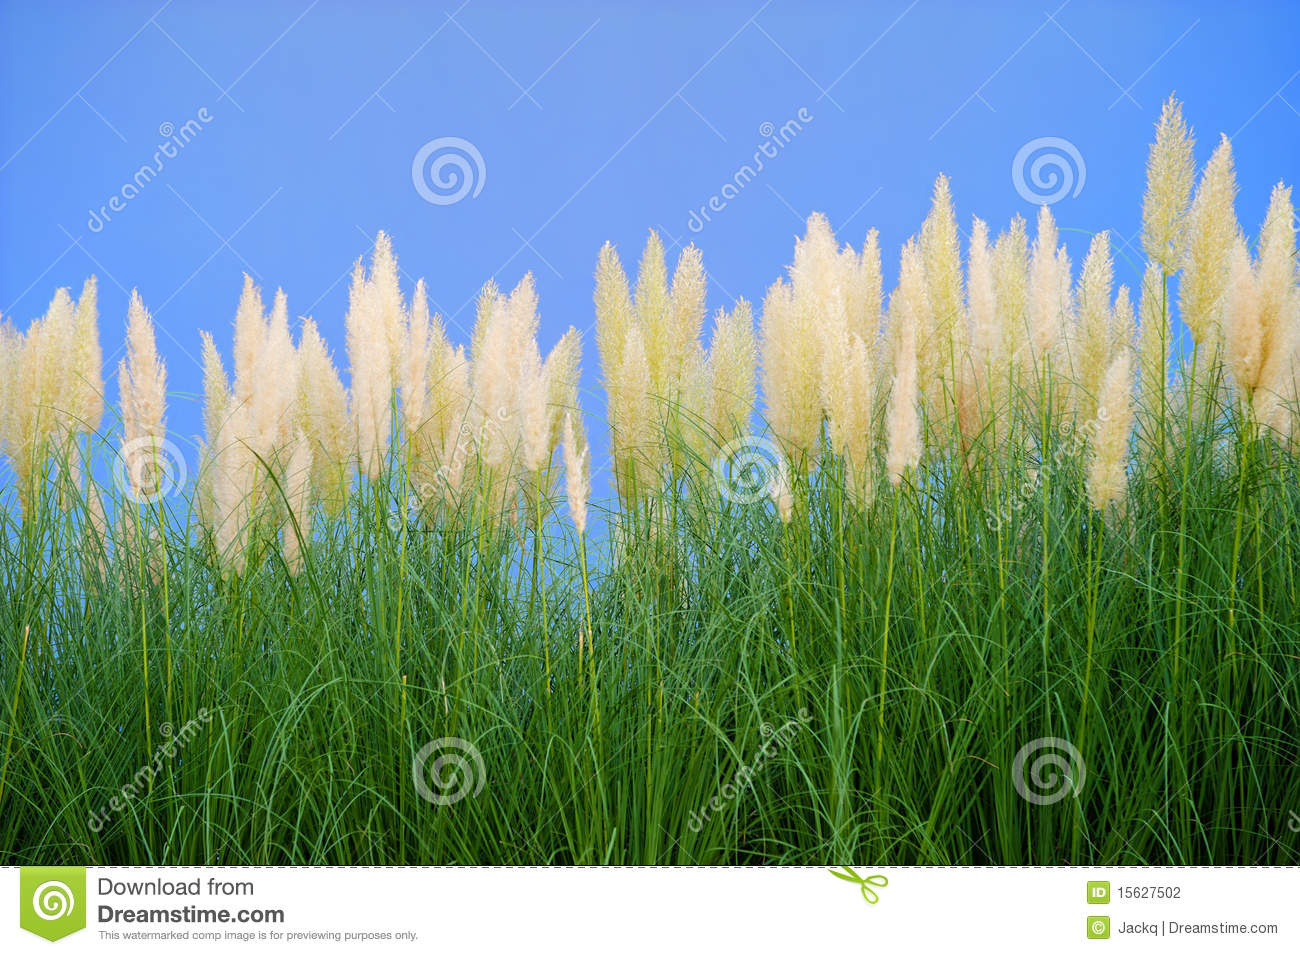 environment-friendly-reeds-15627502.jpg